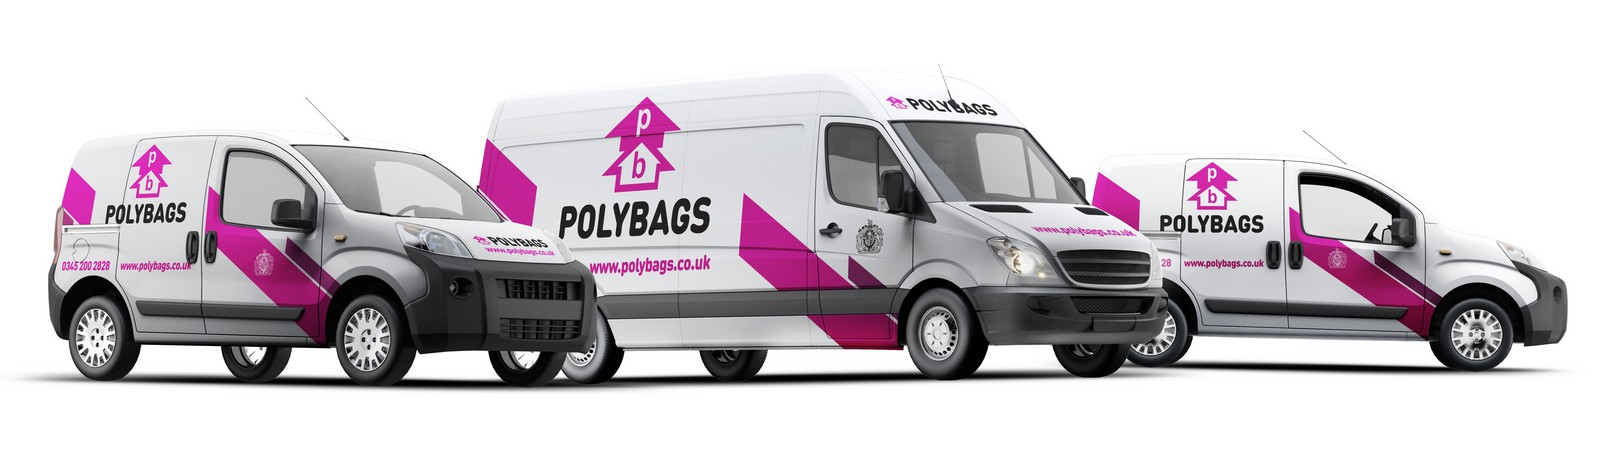 Polybags' delivery vans